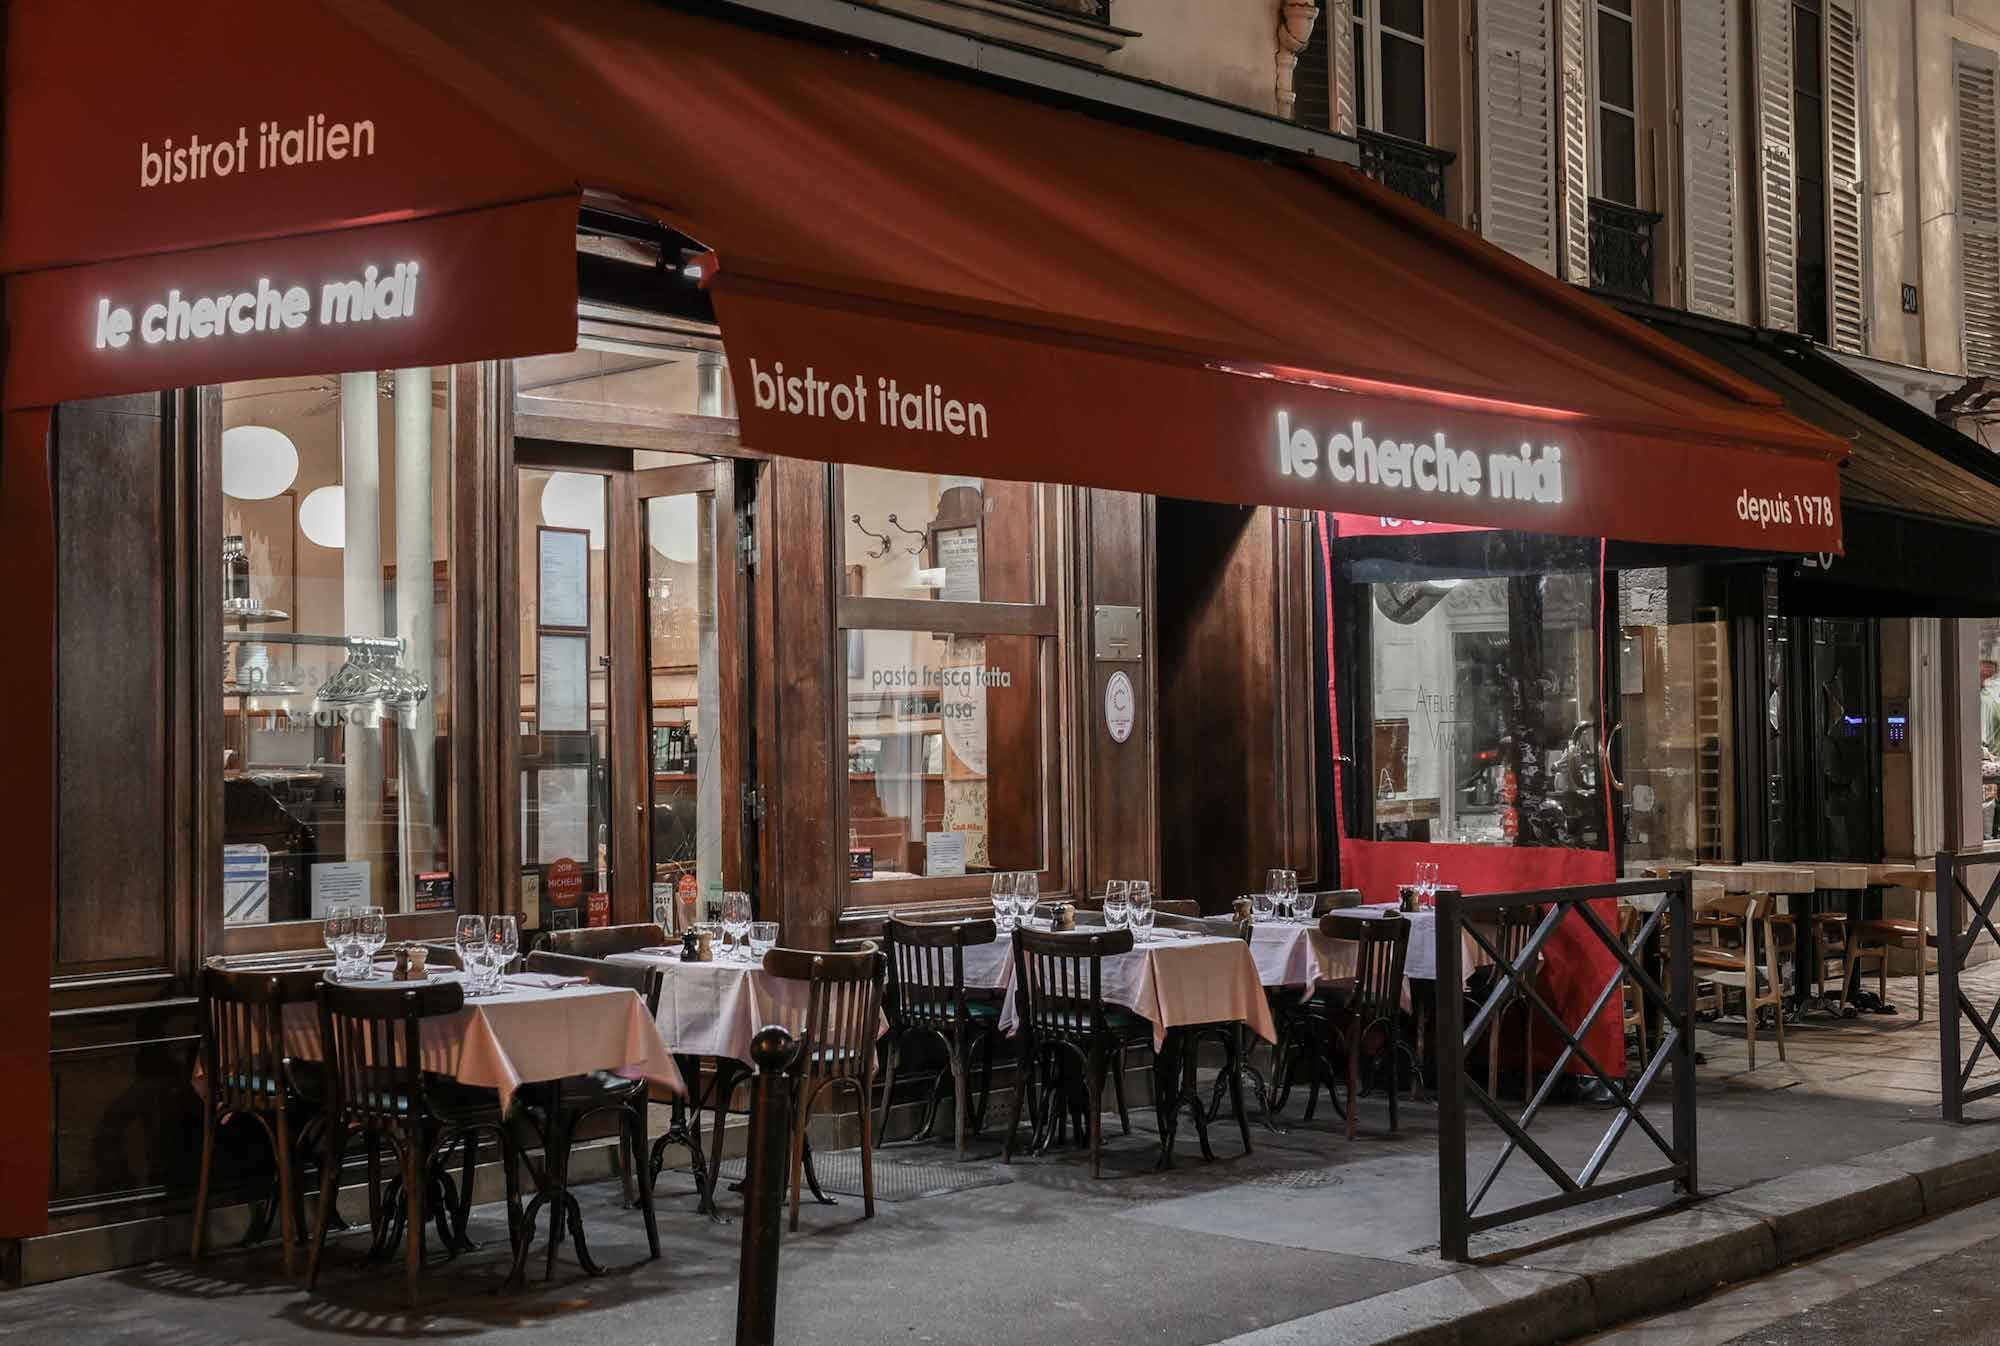 Some of Paris' best restaurants are to be found on rue du Cherche-Midi like this quaint bistro with a red awning over an outdoor terrace.